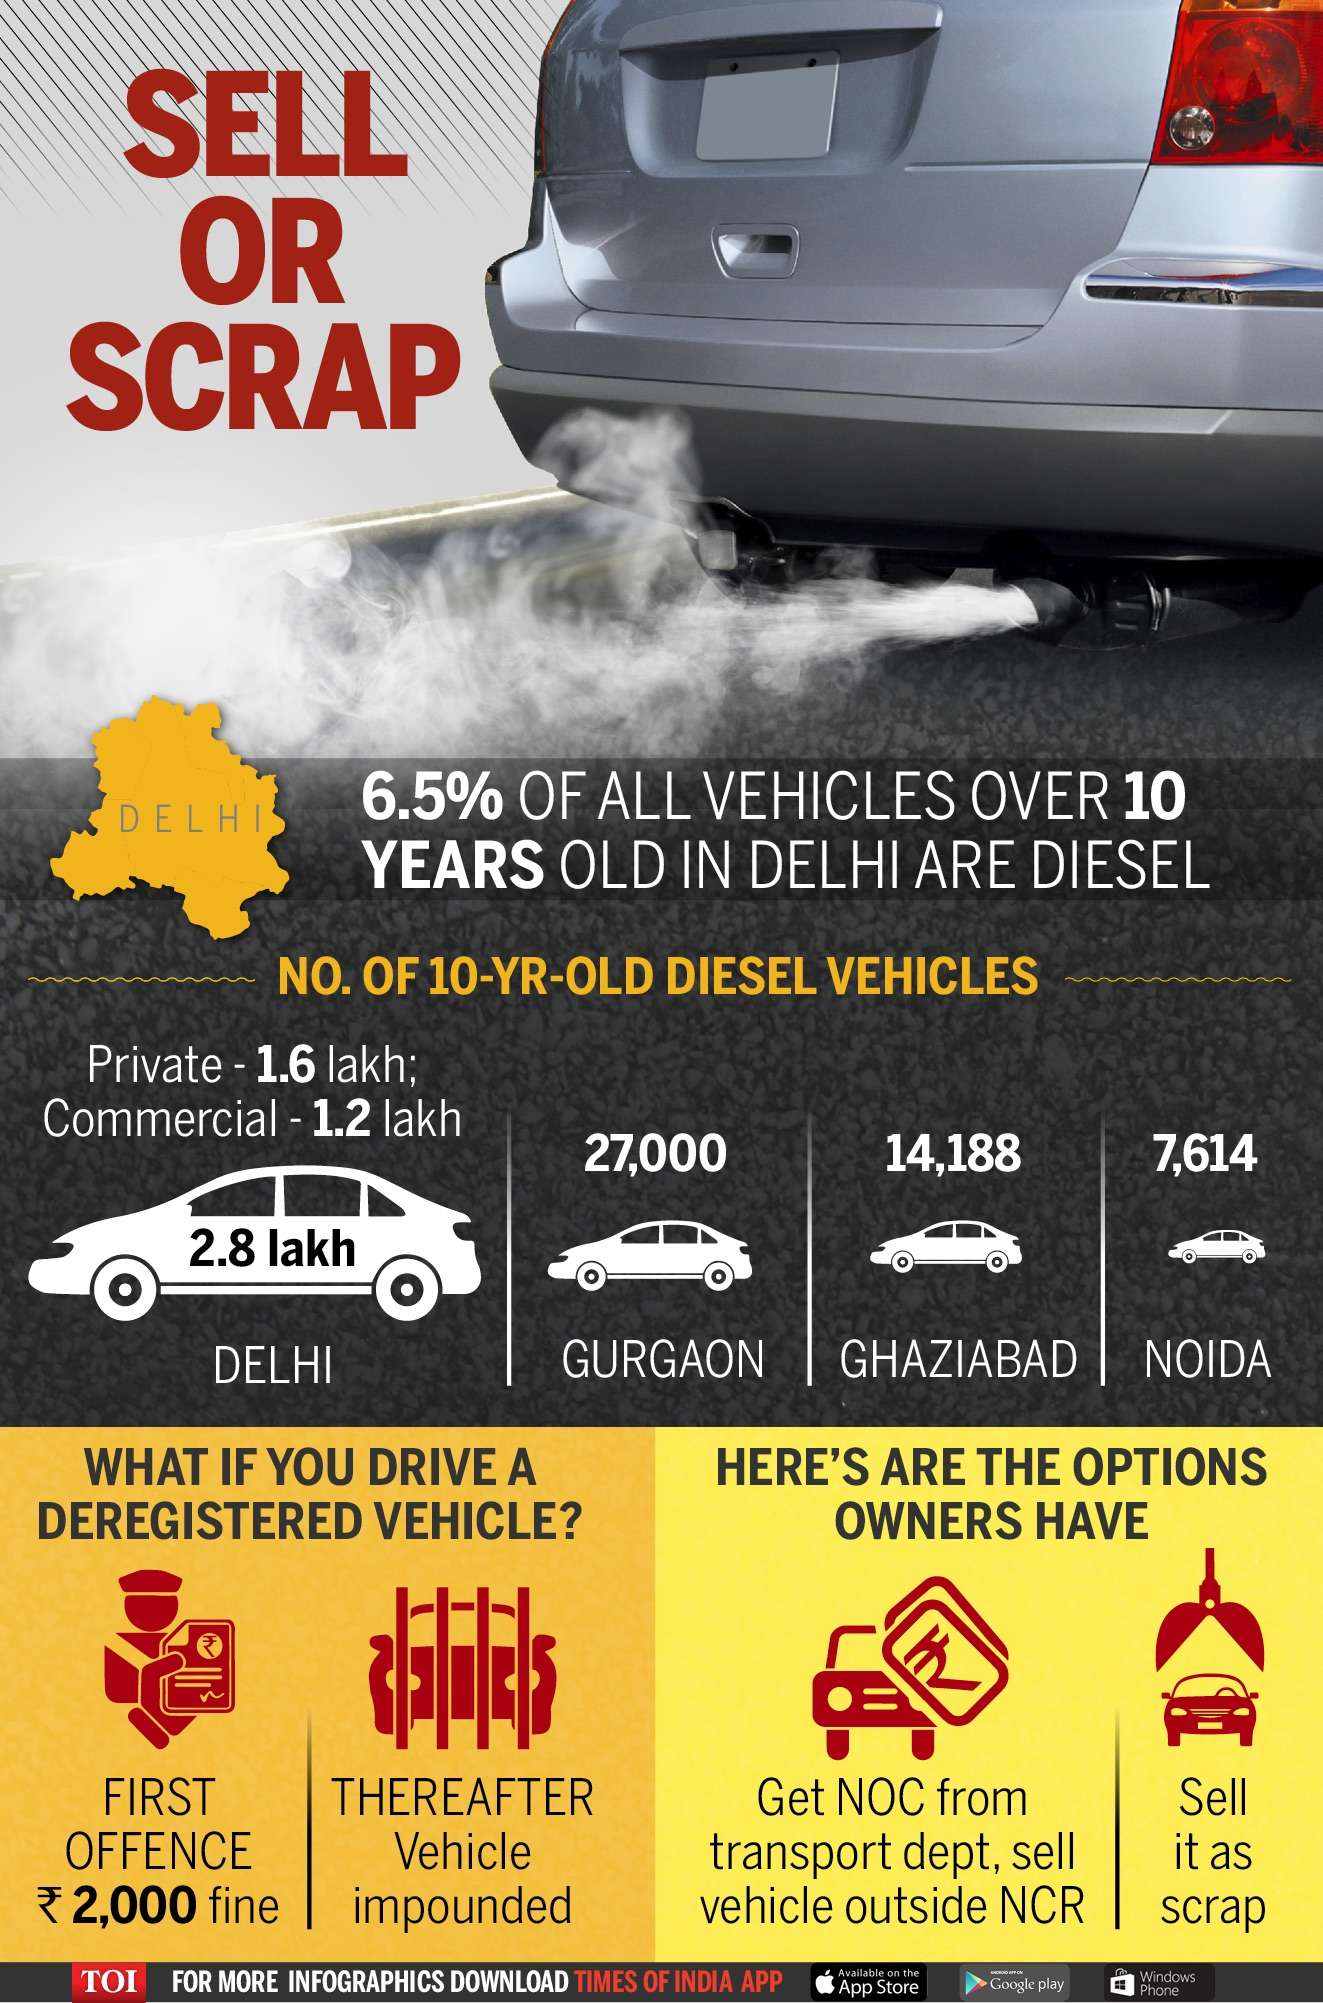 SELL OR SCRAP-Infographic-TOI-For Social